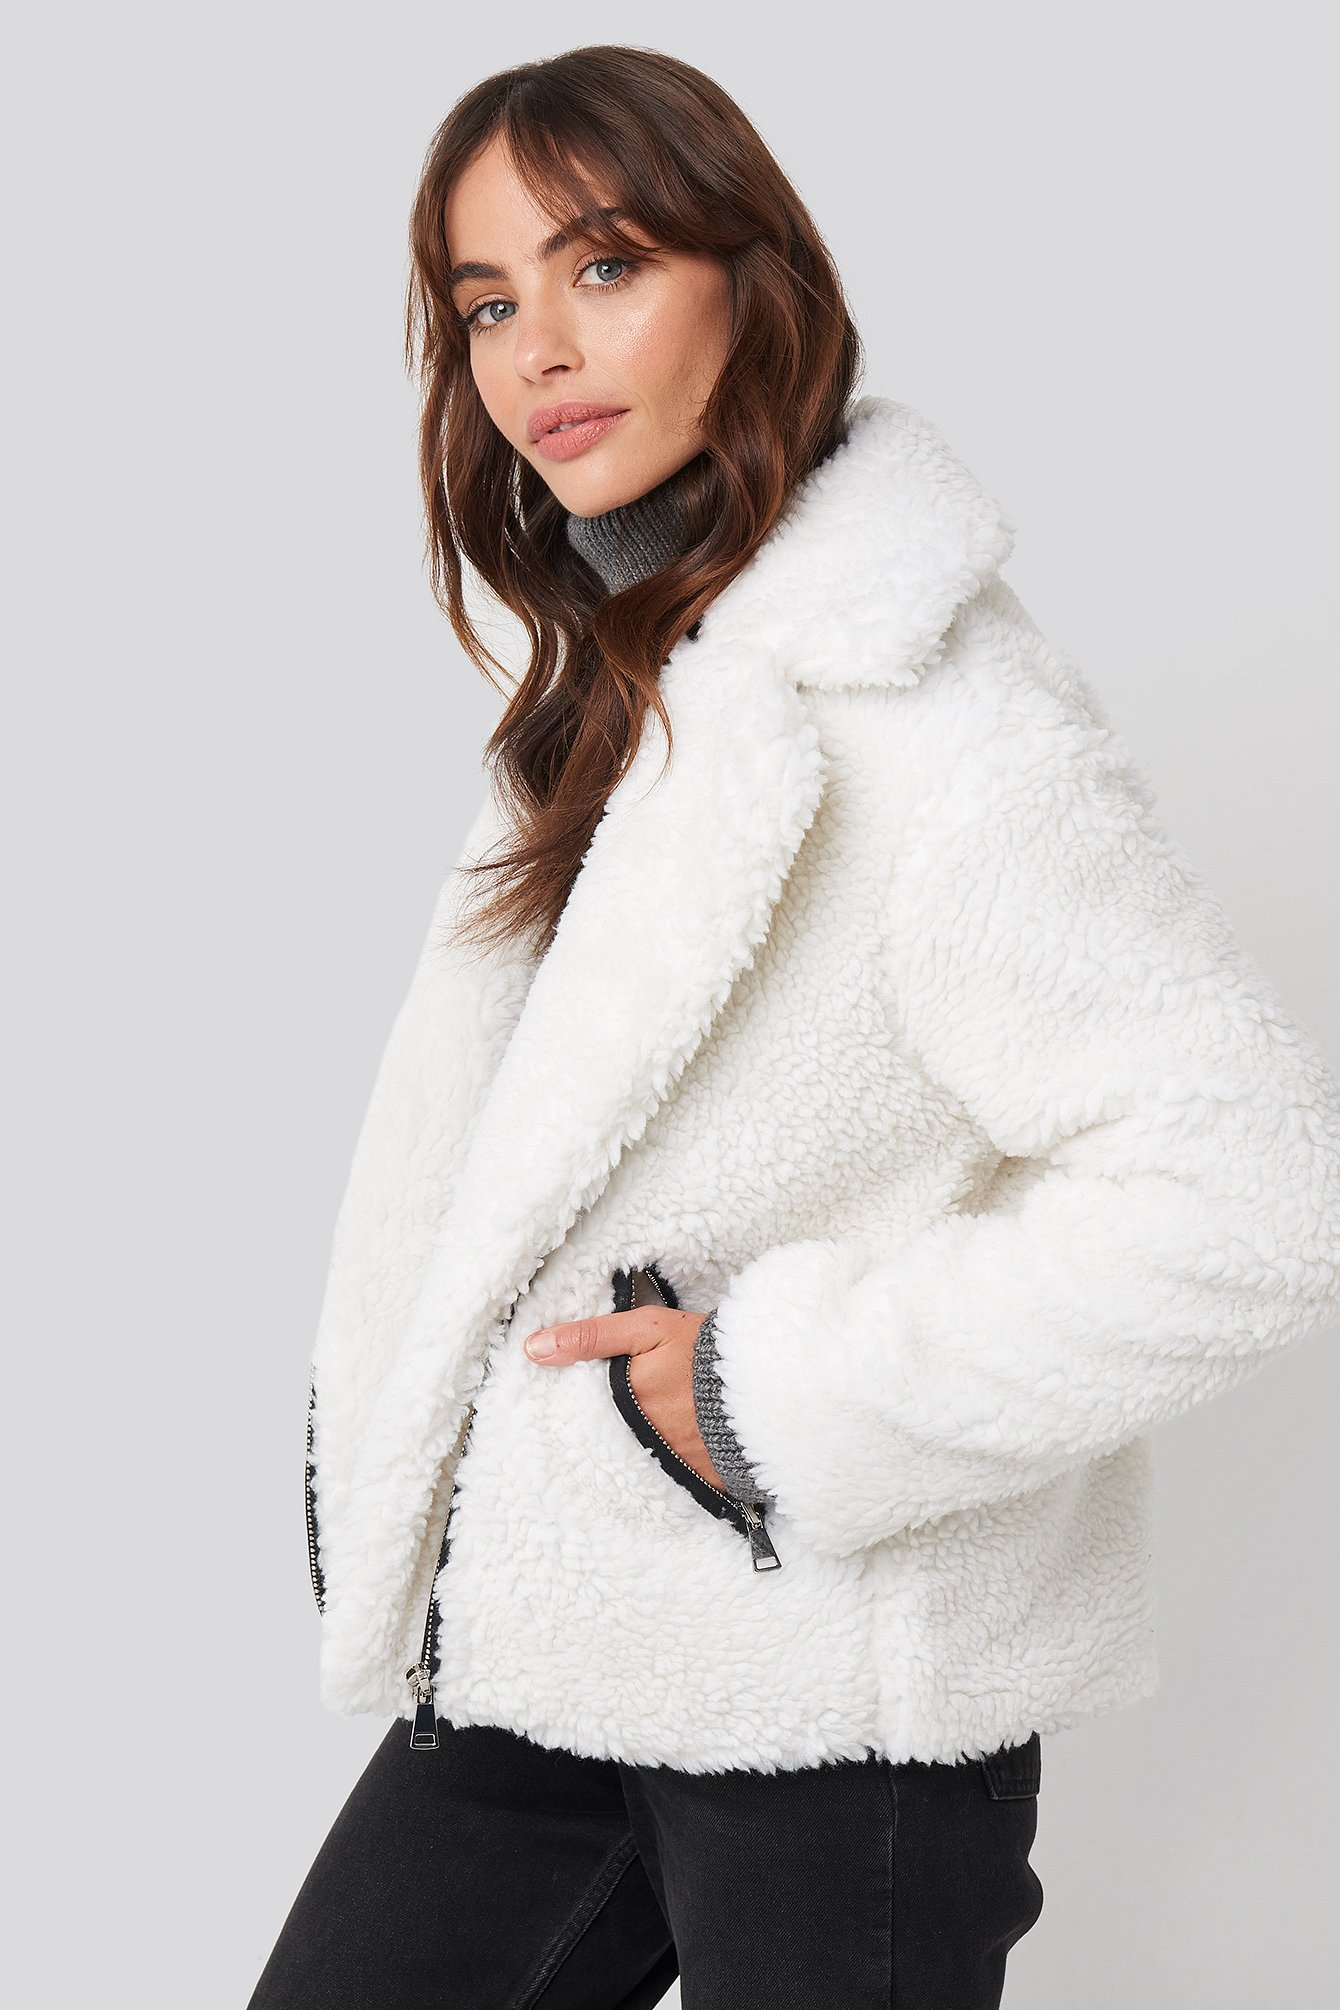 hannalicious x na-kd -  Short Faux Fur Belted Biker Jacket - White